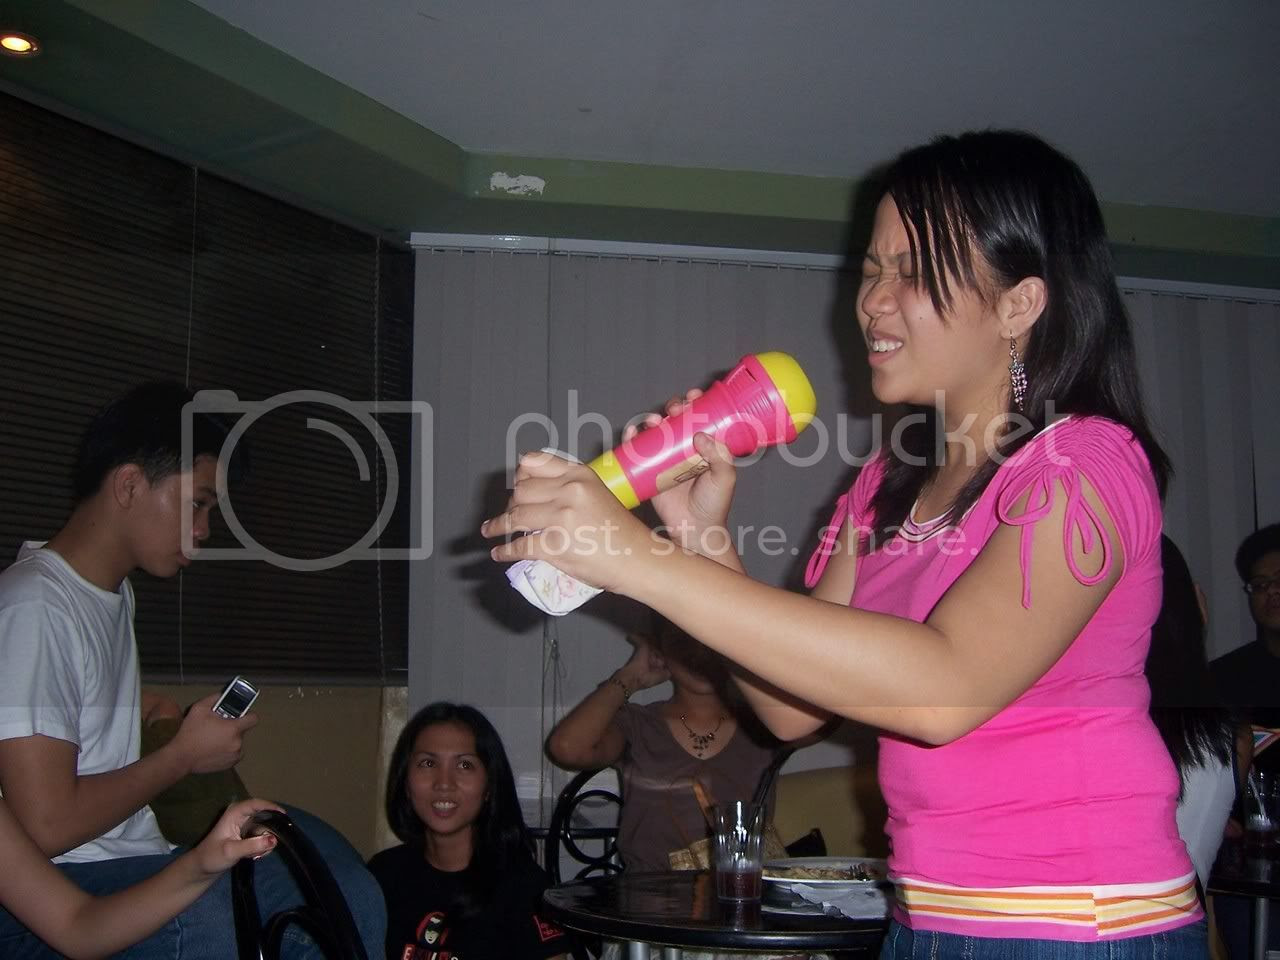 One of my favorite random shots - singing sensation Ariane doing her stuff when that bad vocalist ruined our nights. Image hosted by Photobucket